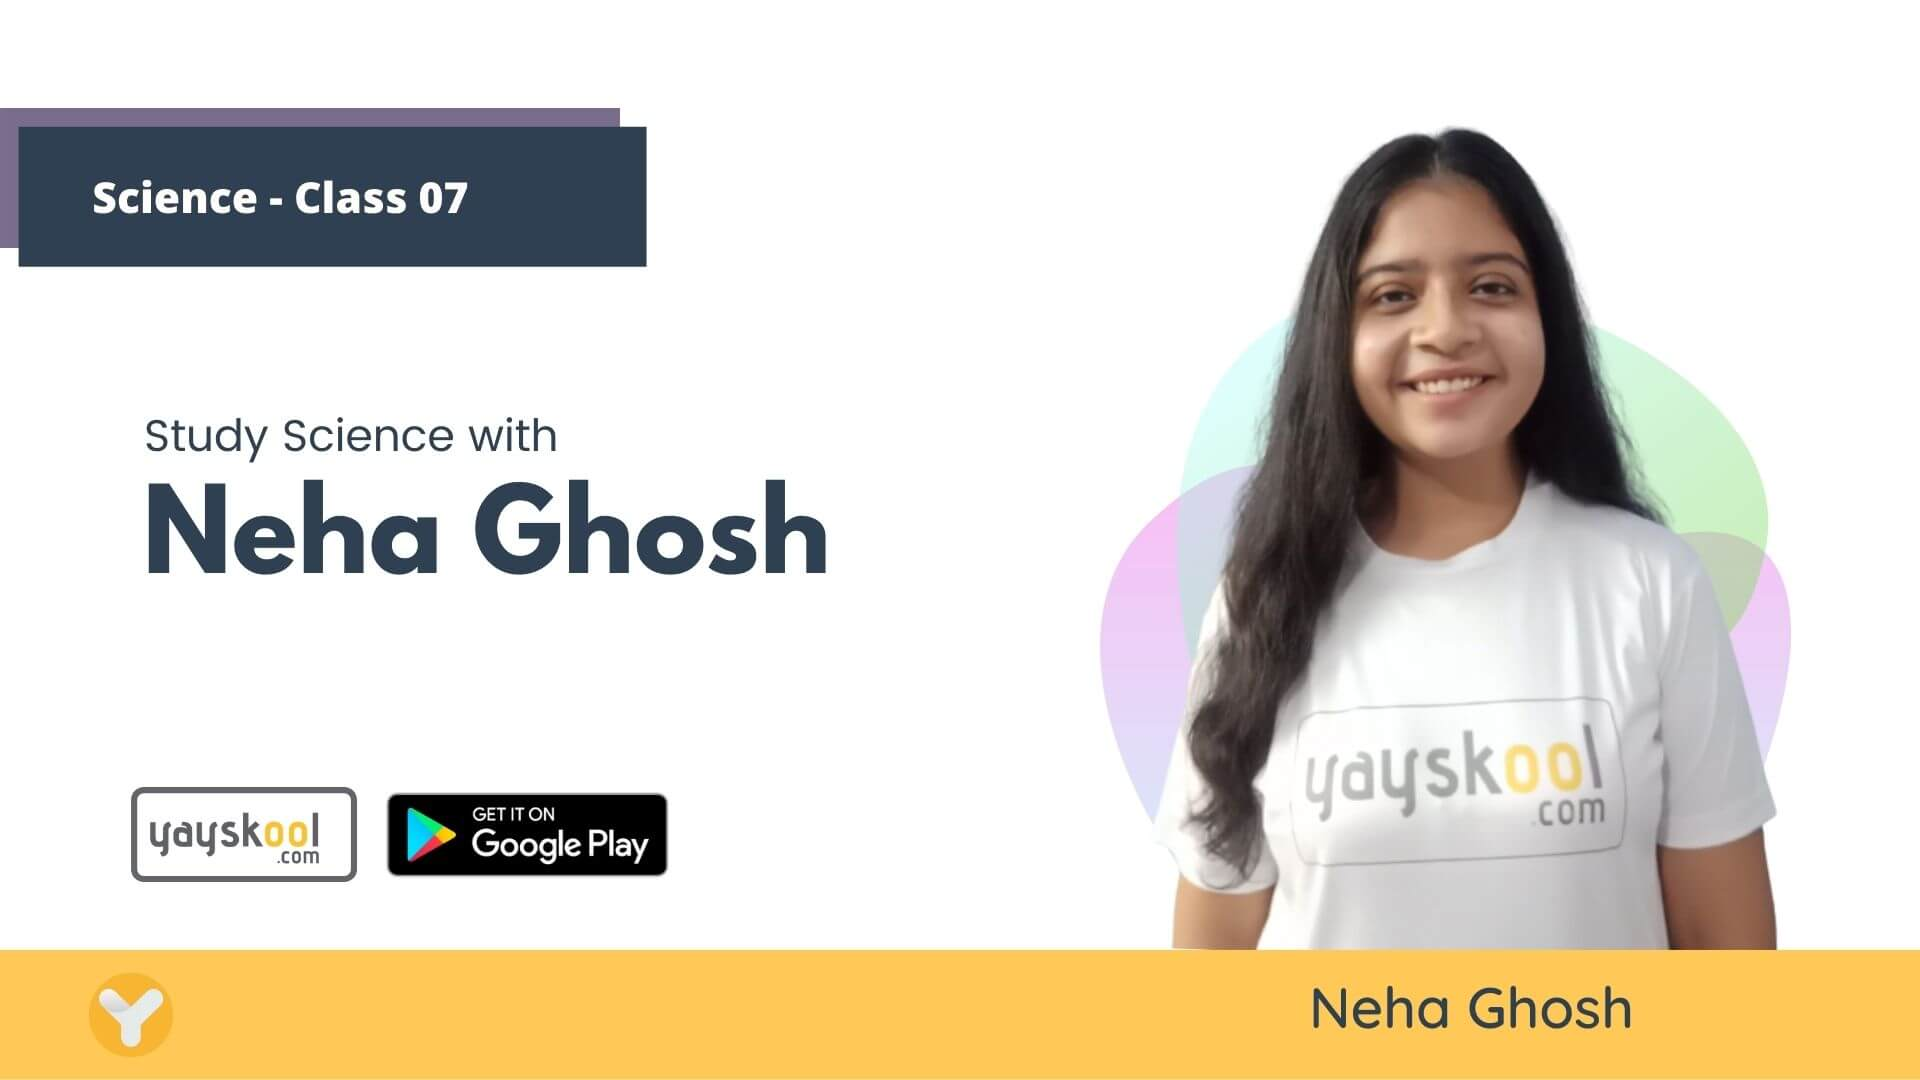 science-course-class07-neha-ghosh